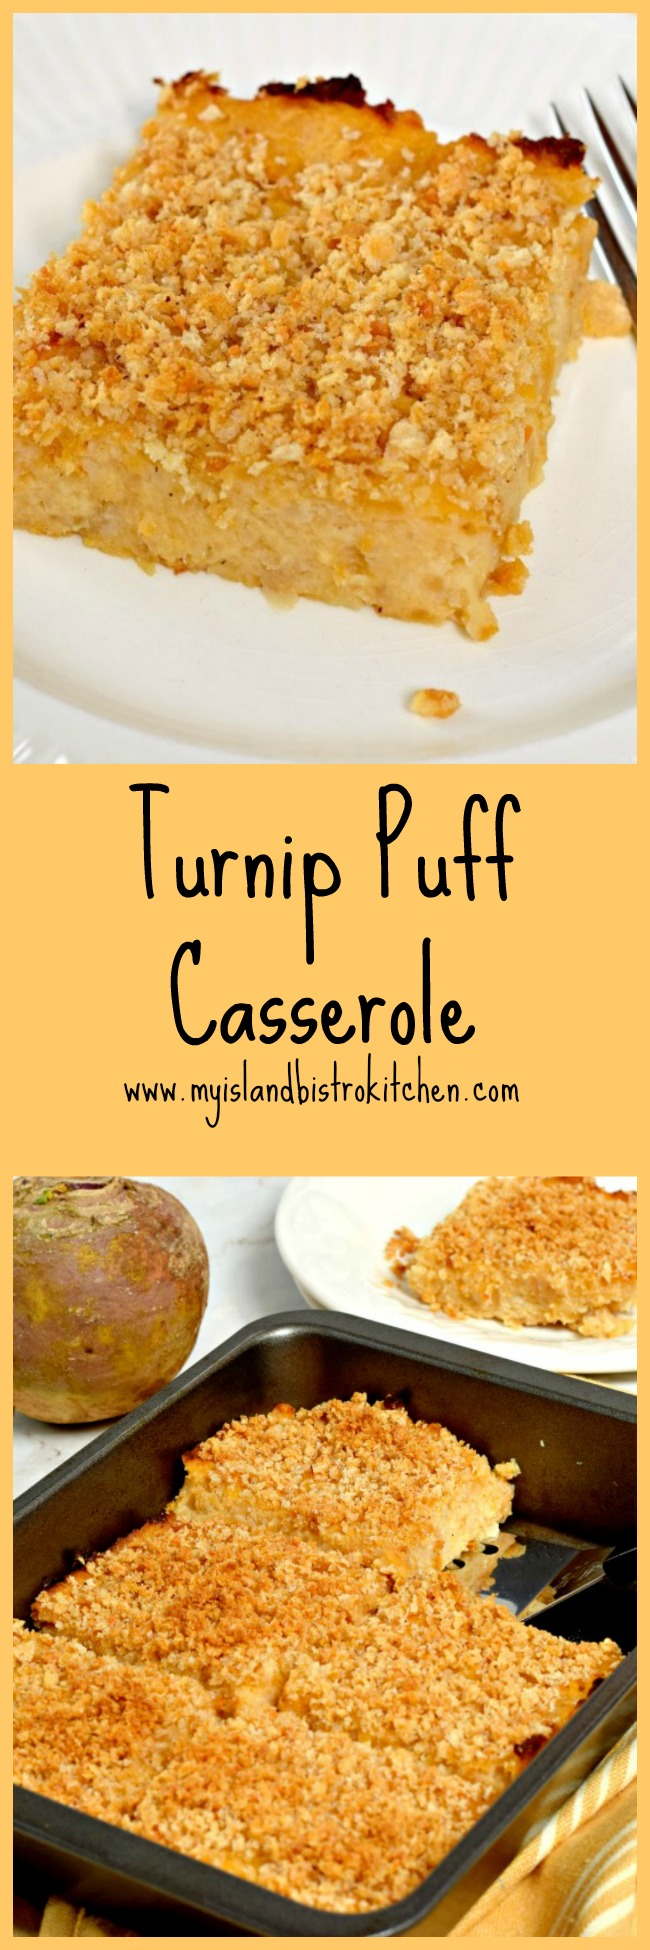 Turnip Puff Casserole - perfect side dish to turkey, beef, or pork